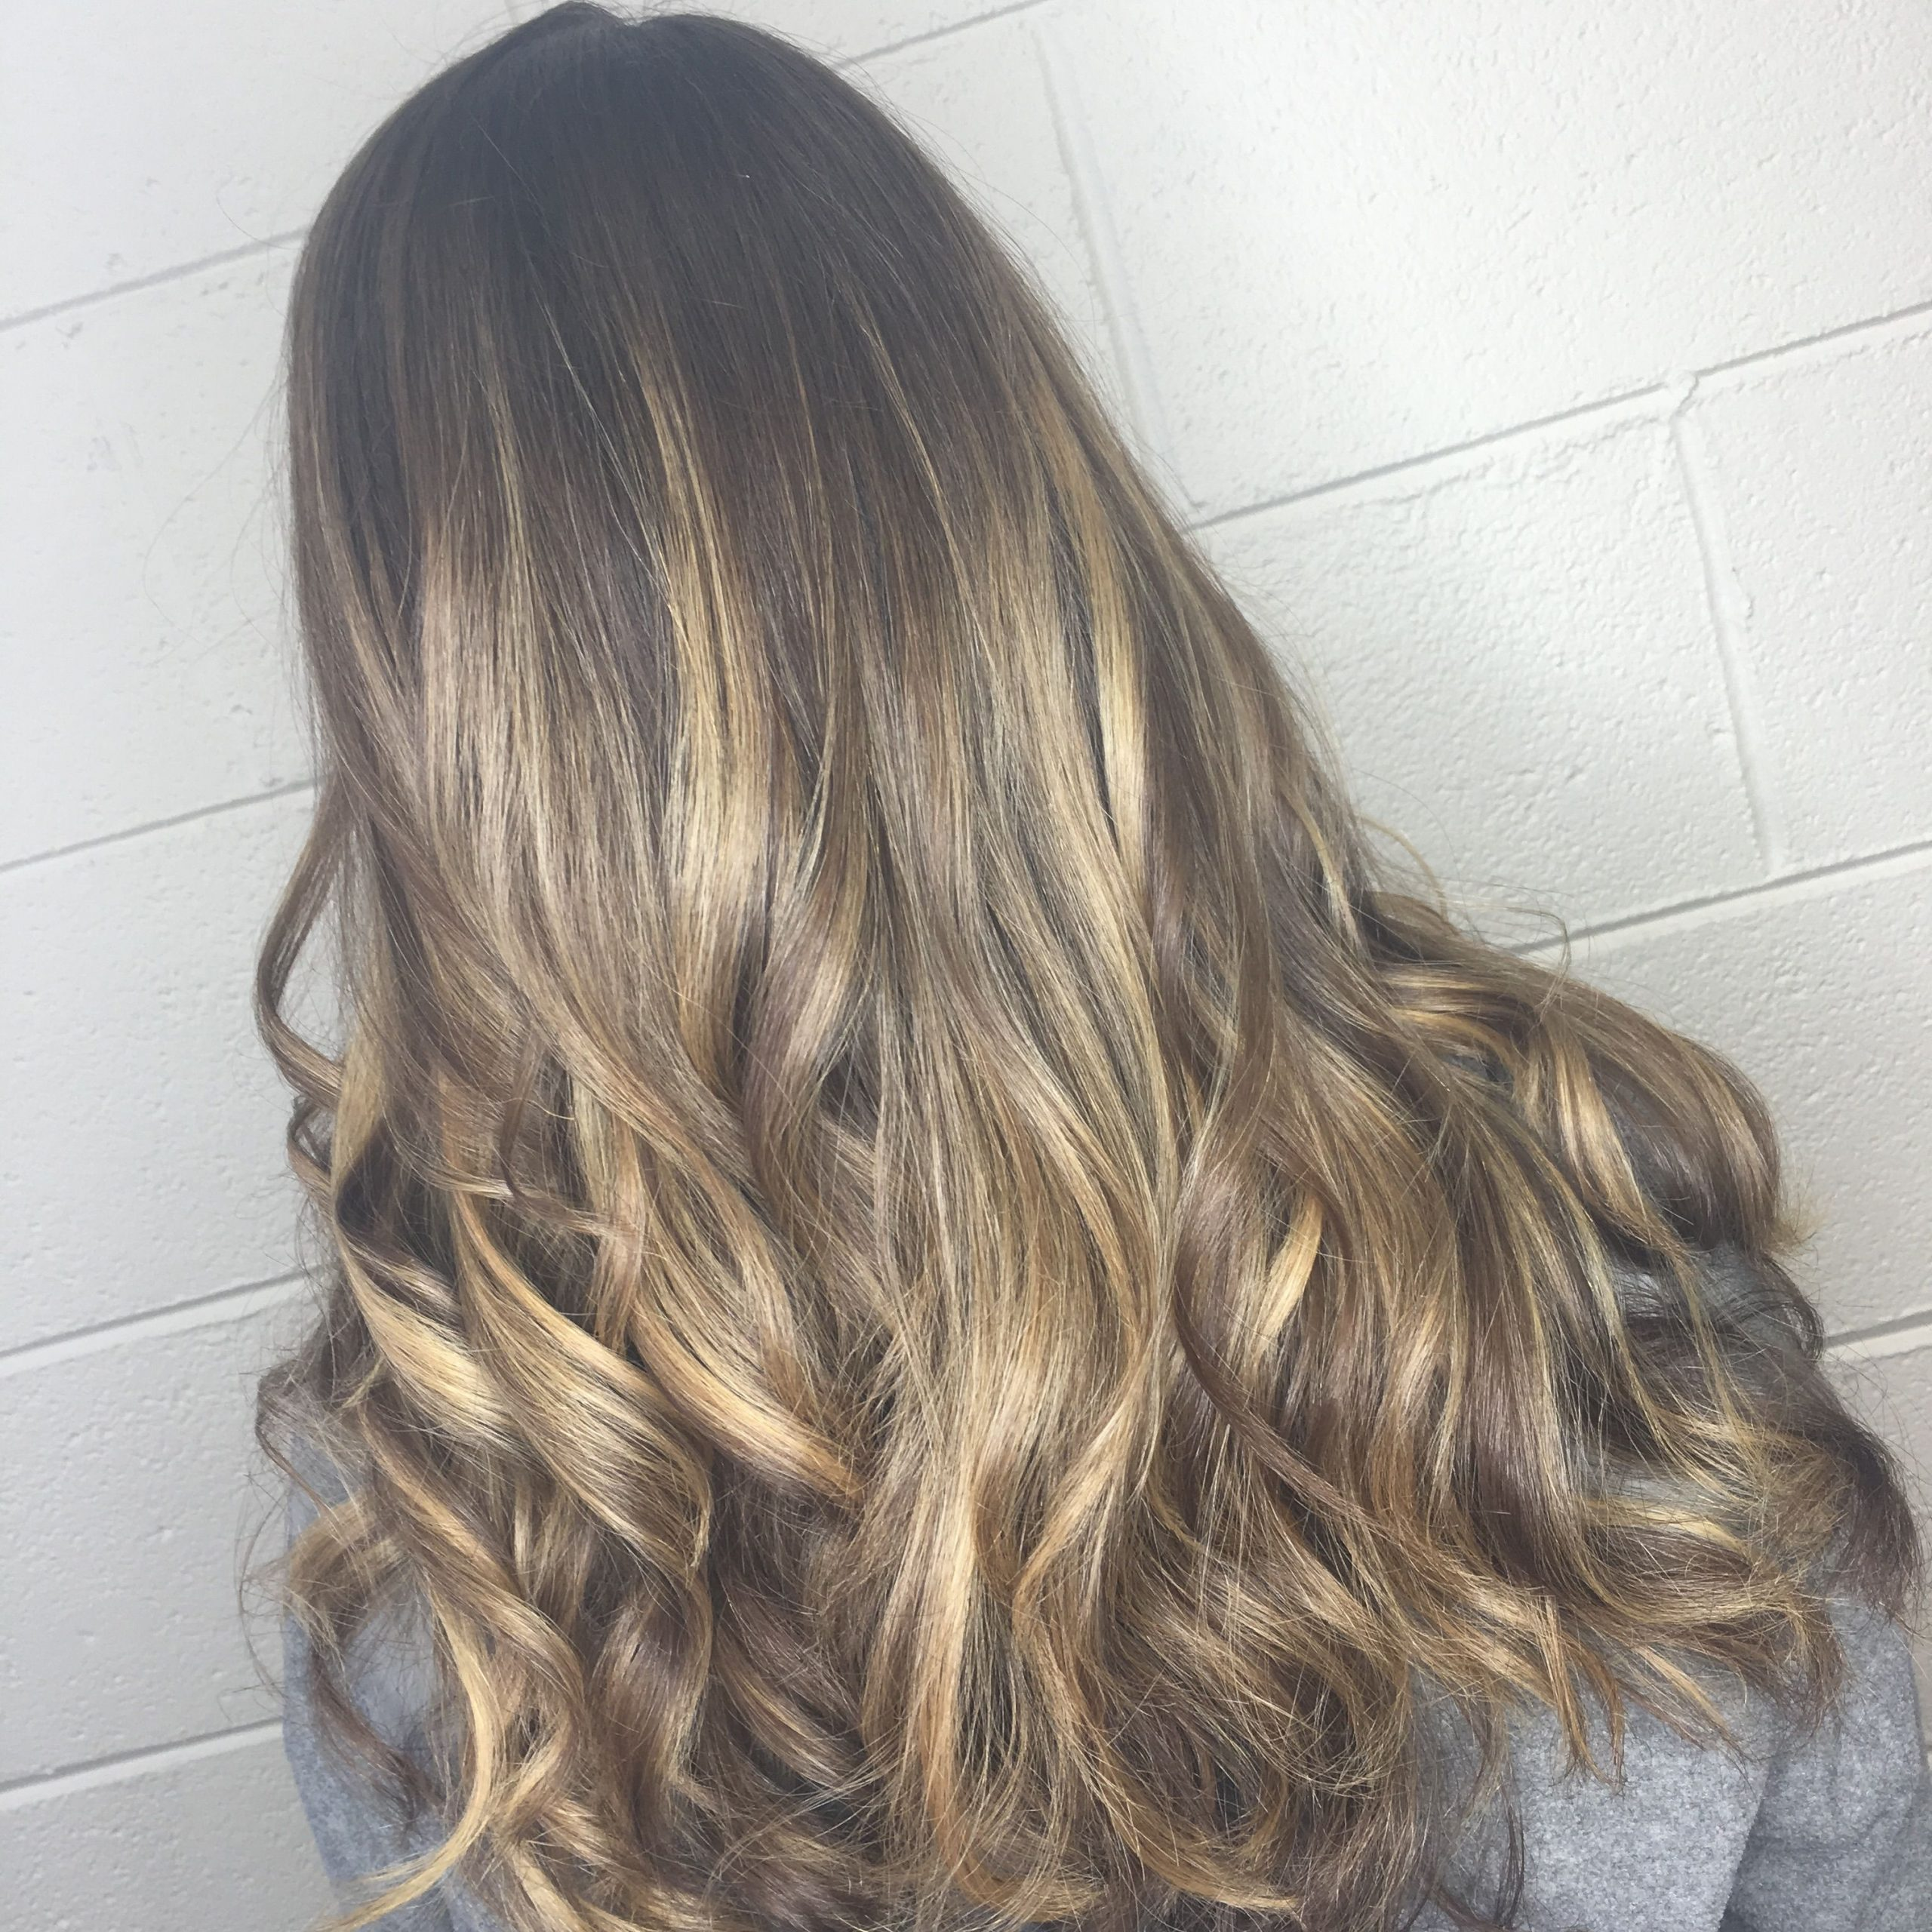 Most Popular Blonde Balayage On Long Voluminous Hairstyles Intended For Subtle Blonde Balayage (View 8 of 20)